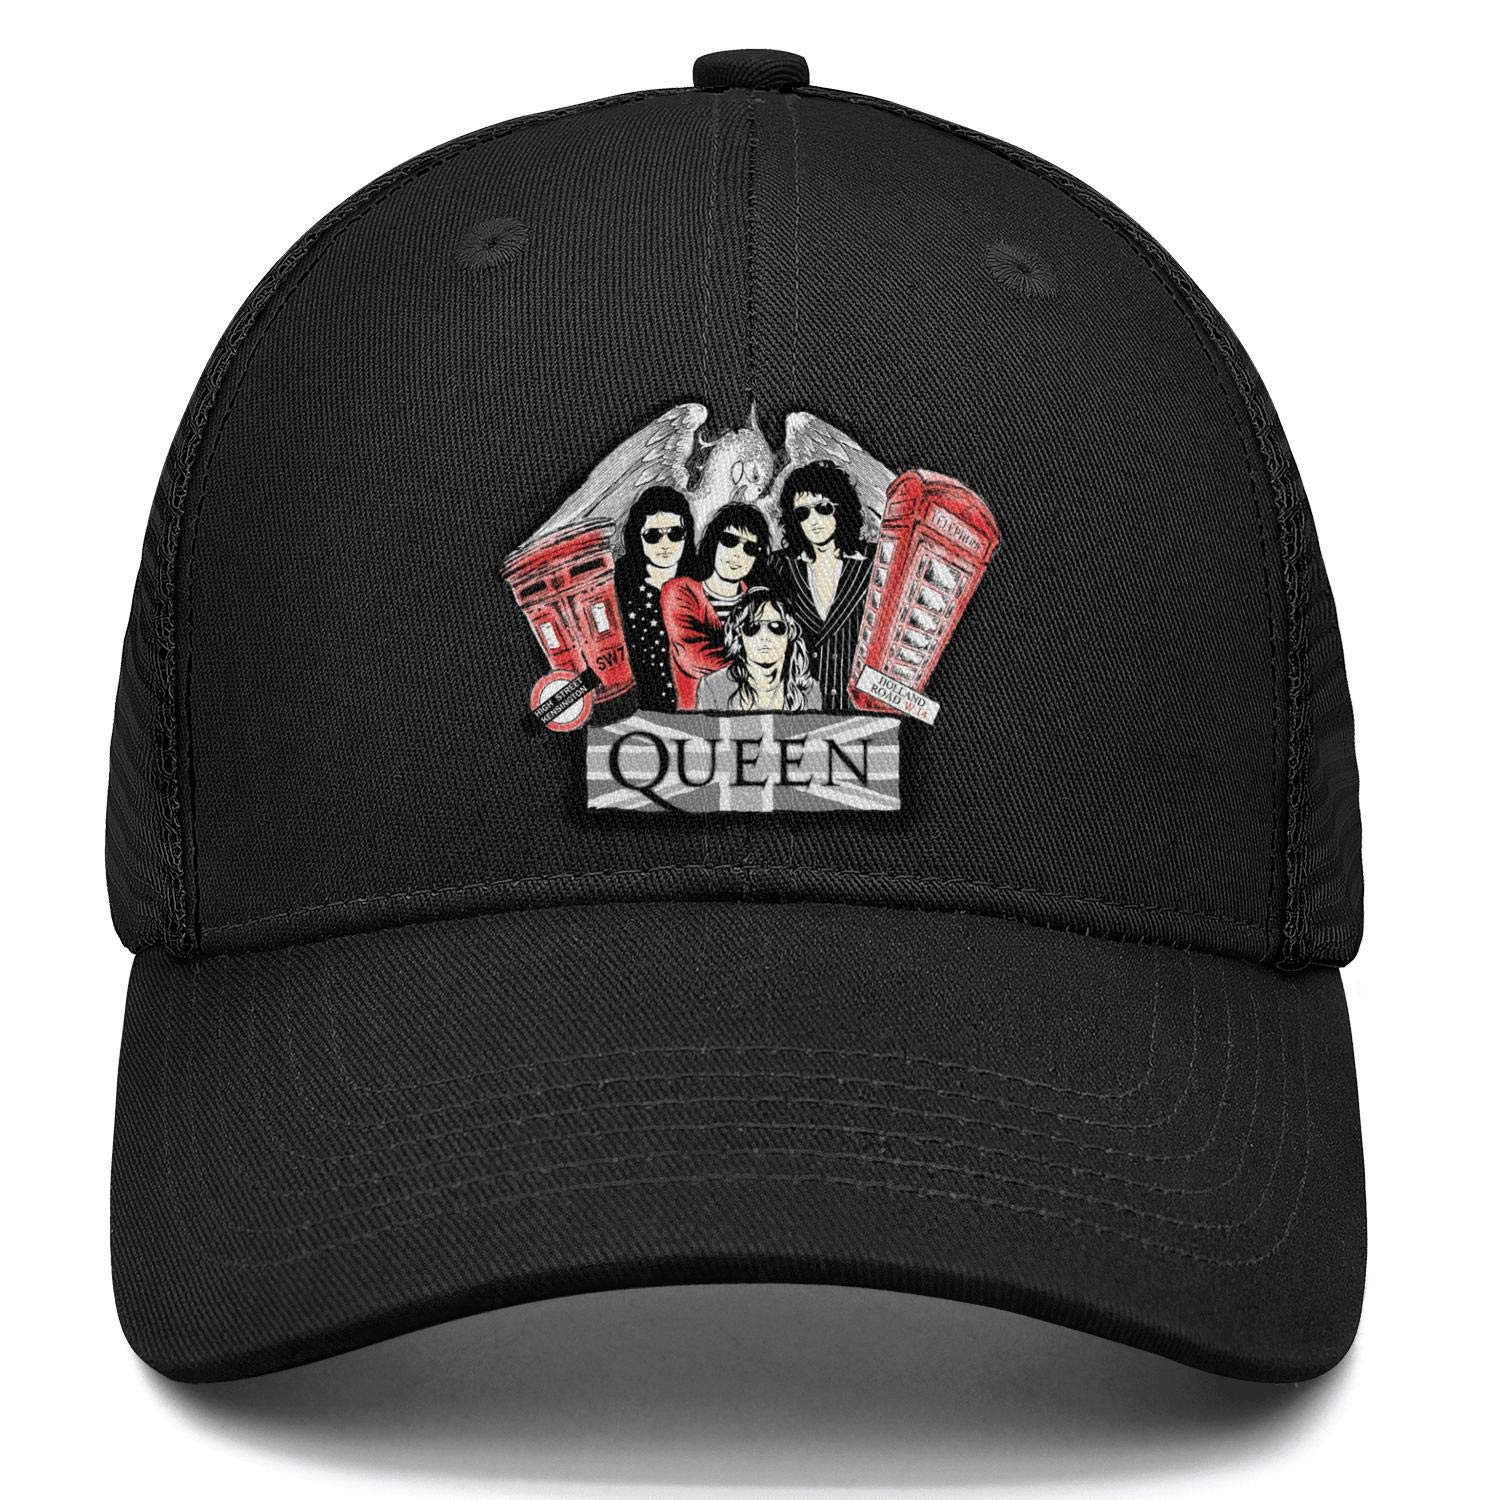 MUSOWIC Mens Womens Queen-Band-Autograph-Sign Cap Fashion Hat Running Caps